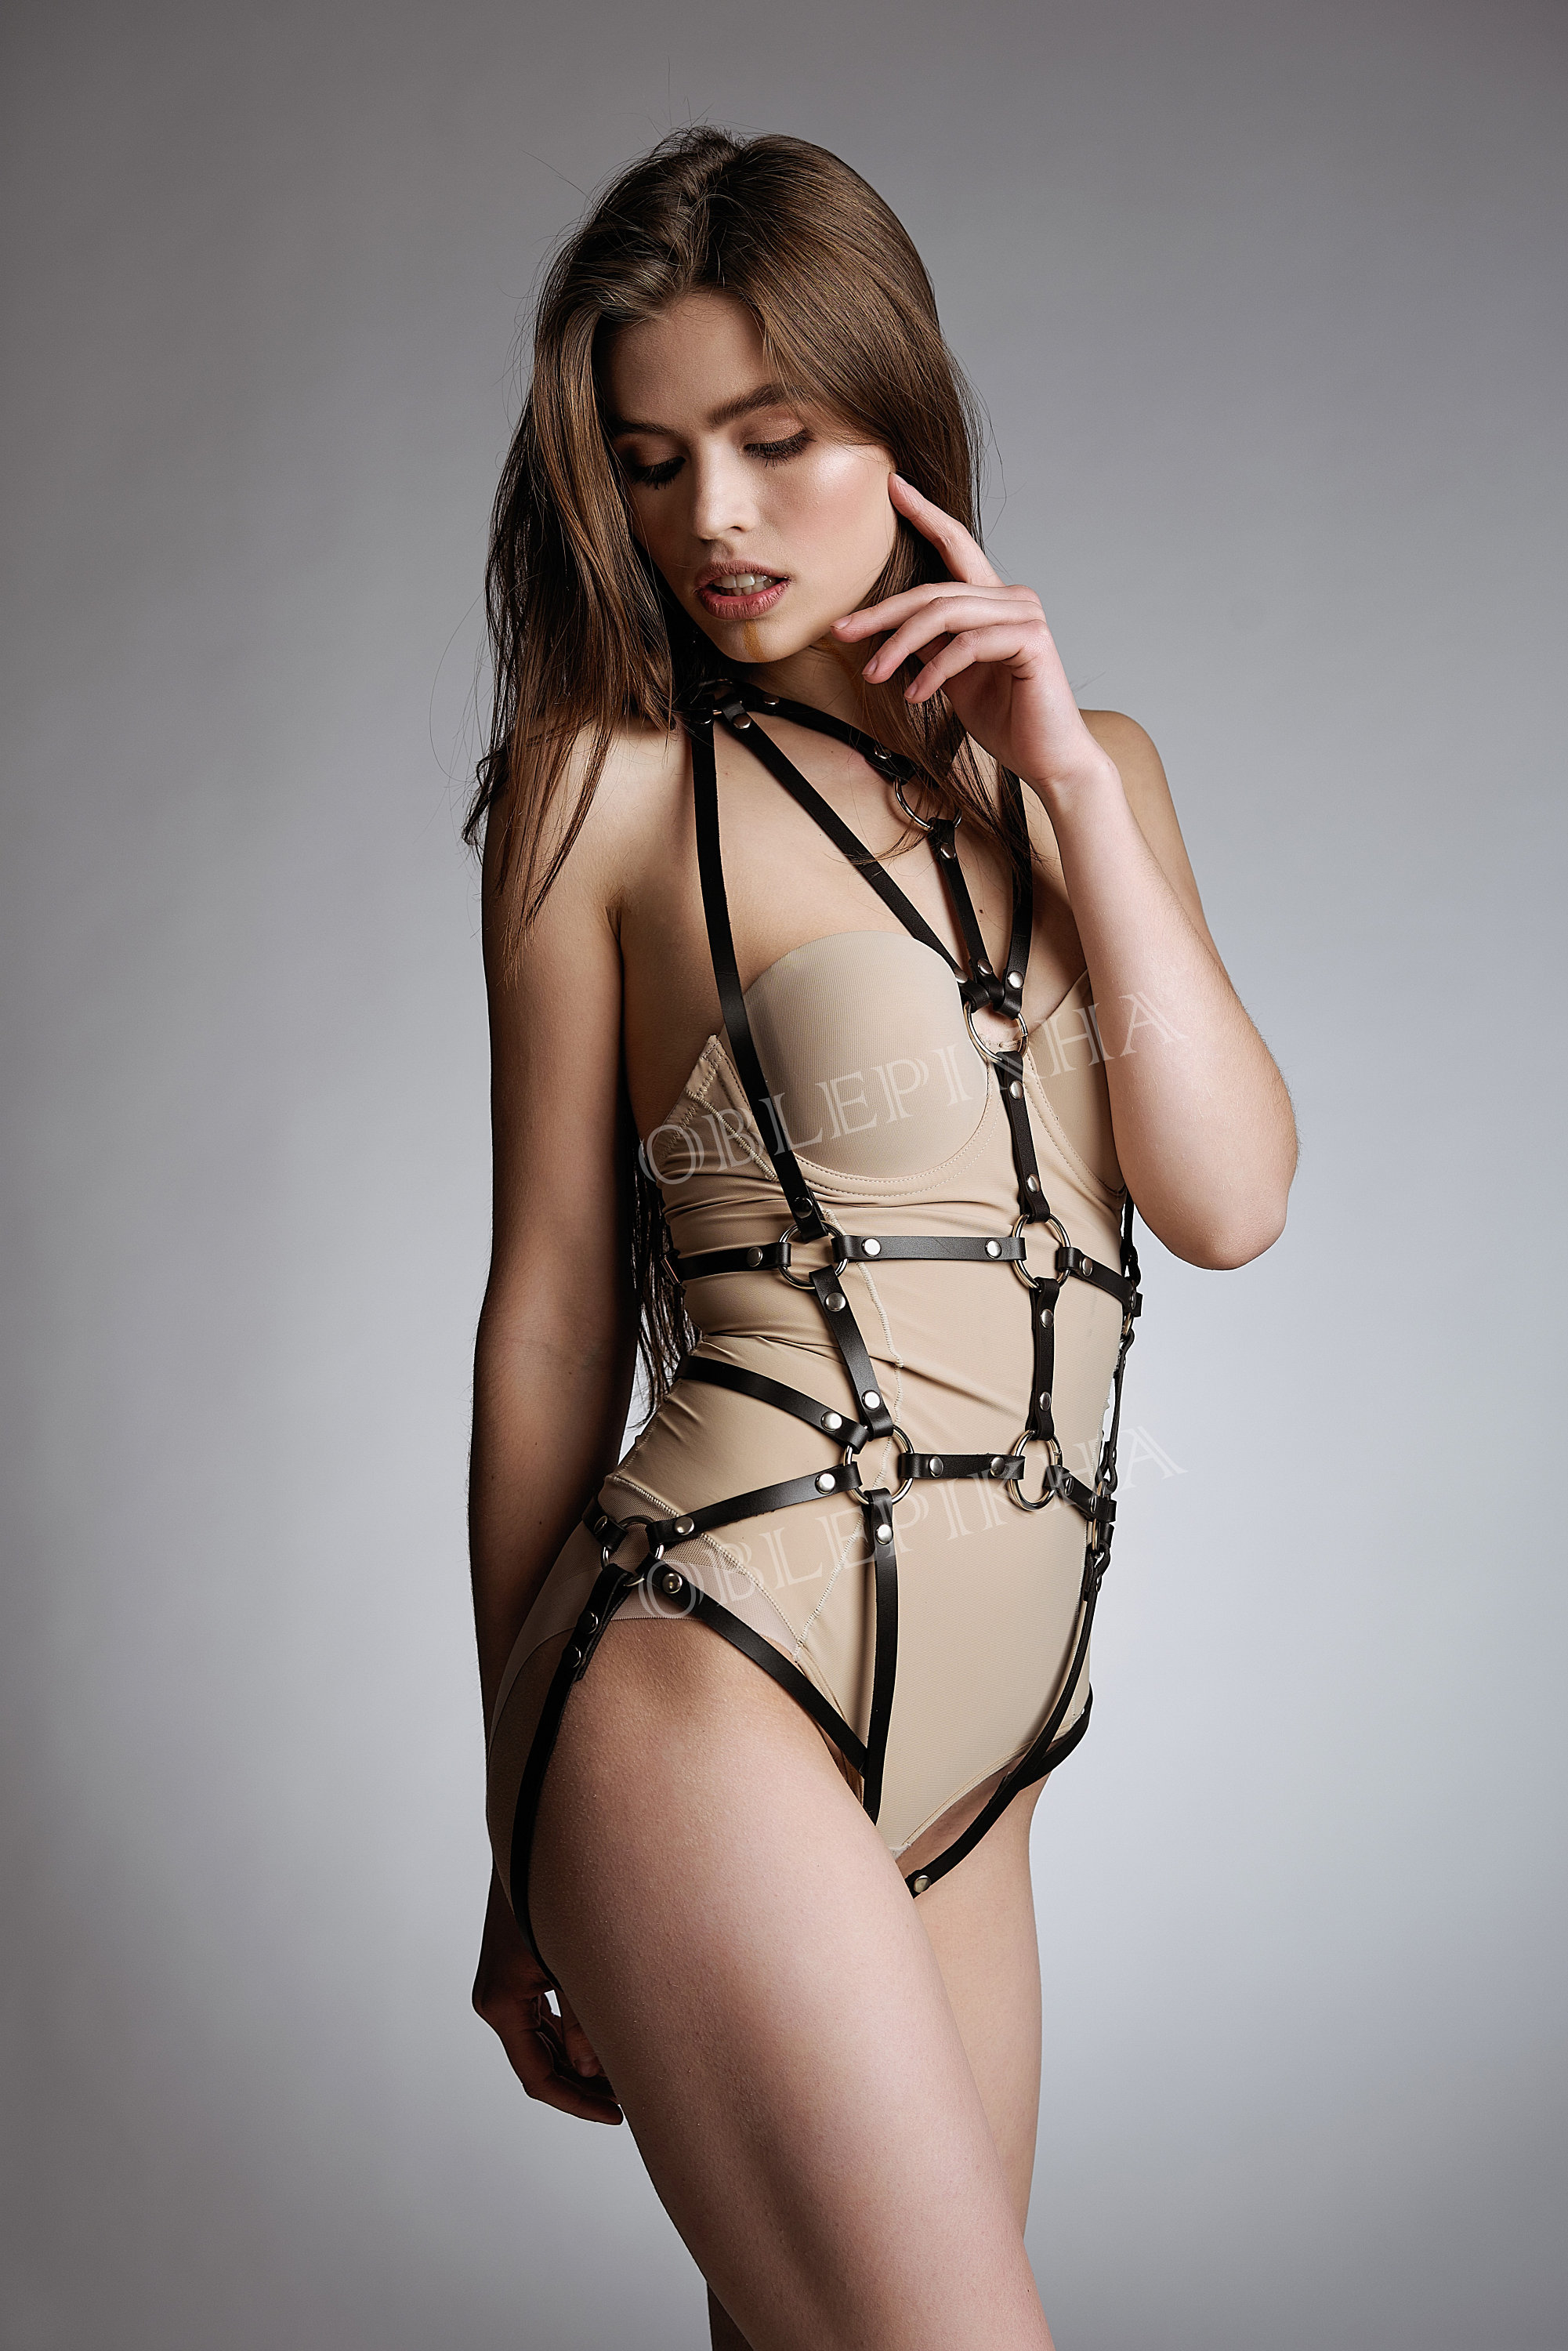 Full Body Leather Harness Erotic Women Harness Harness -7346